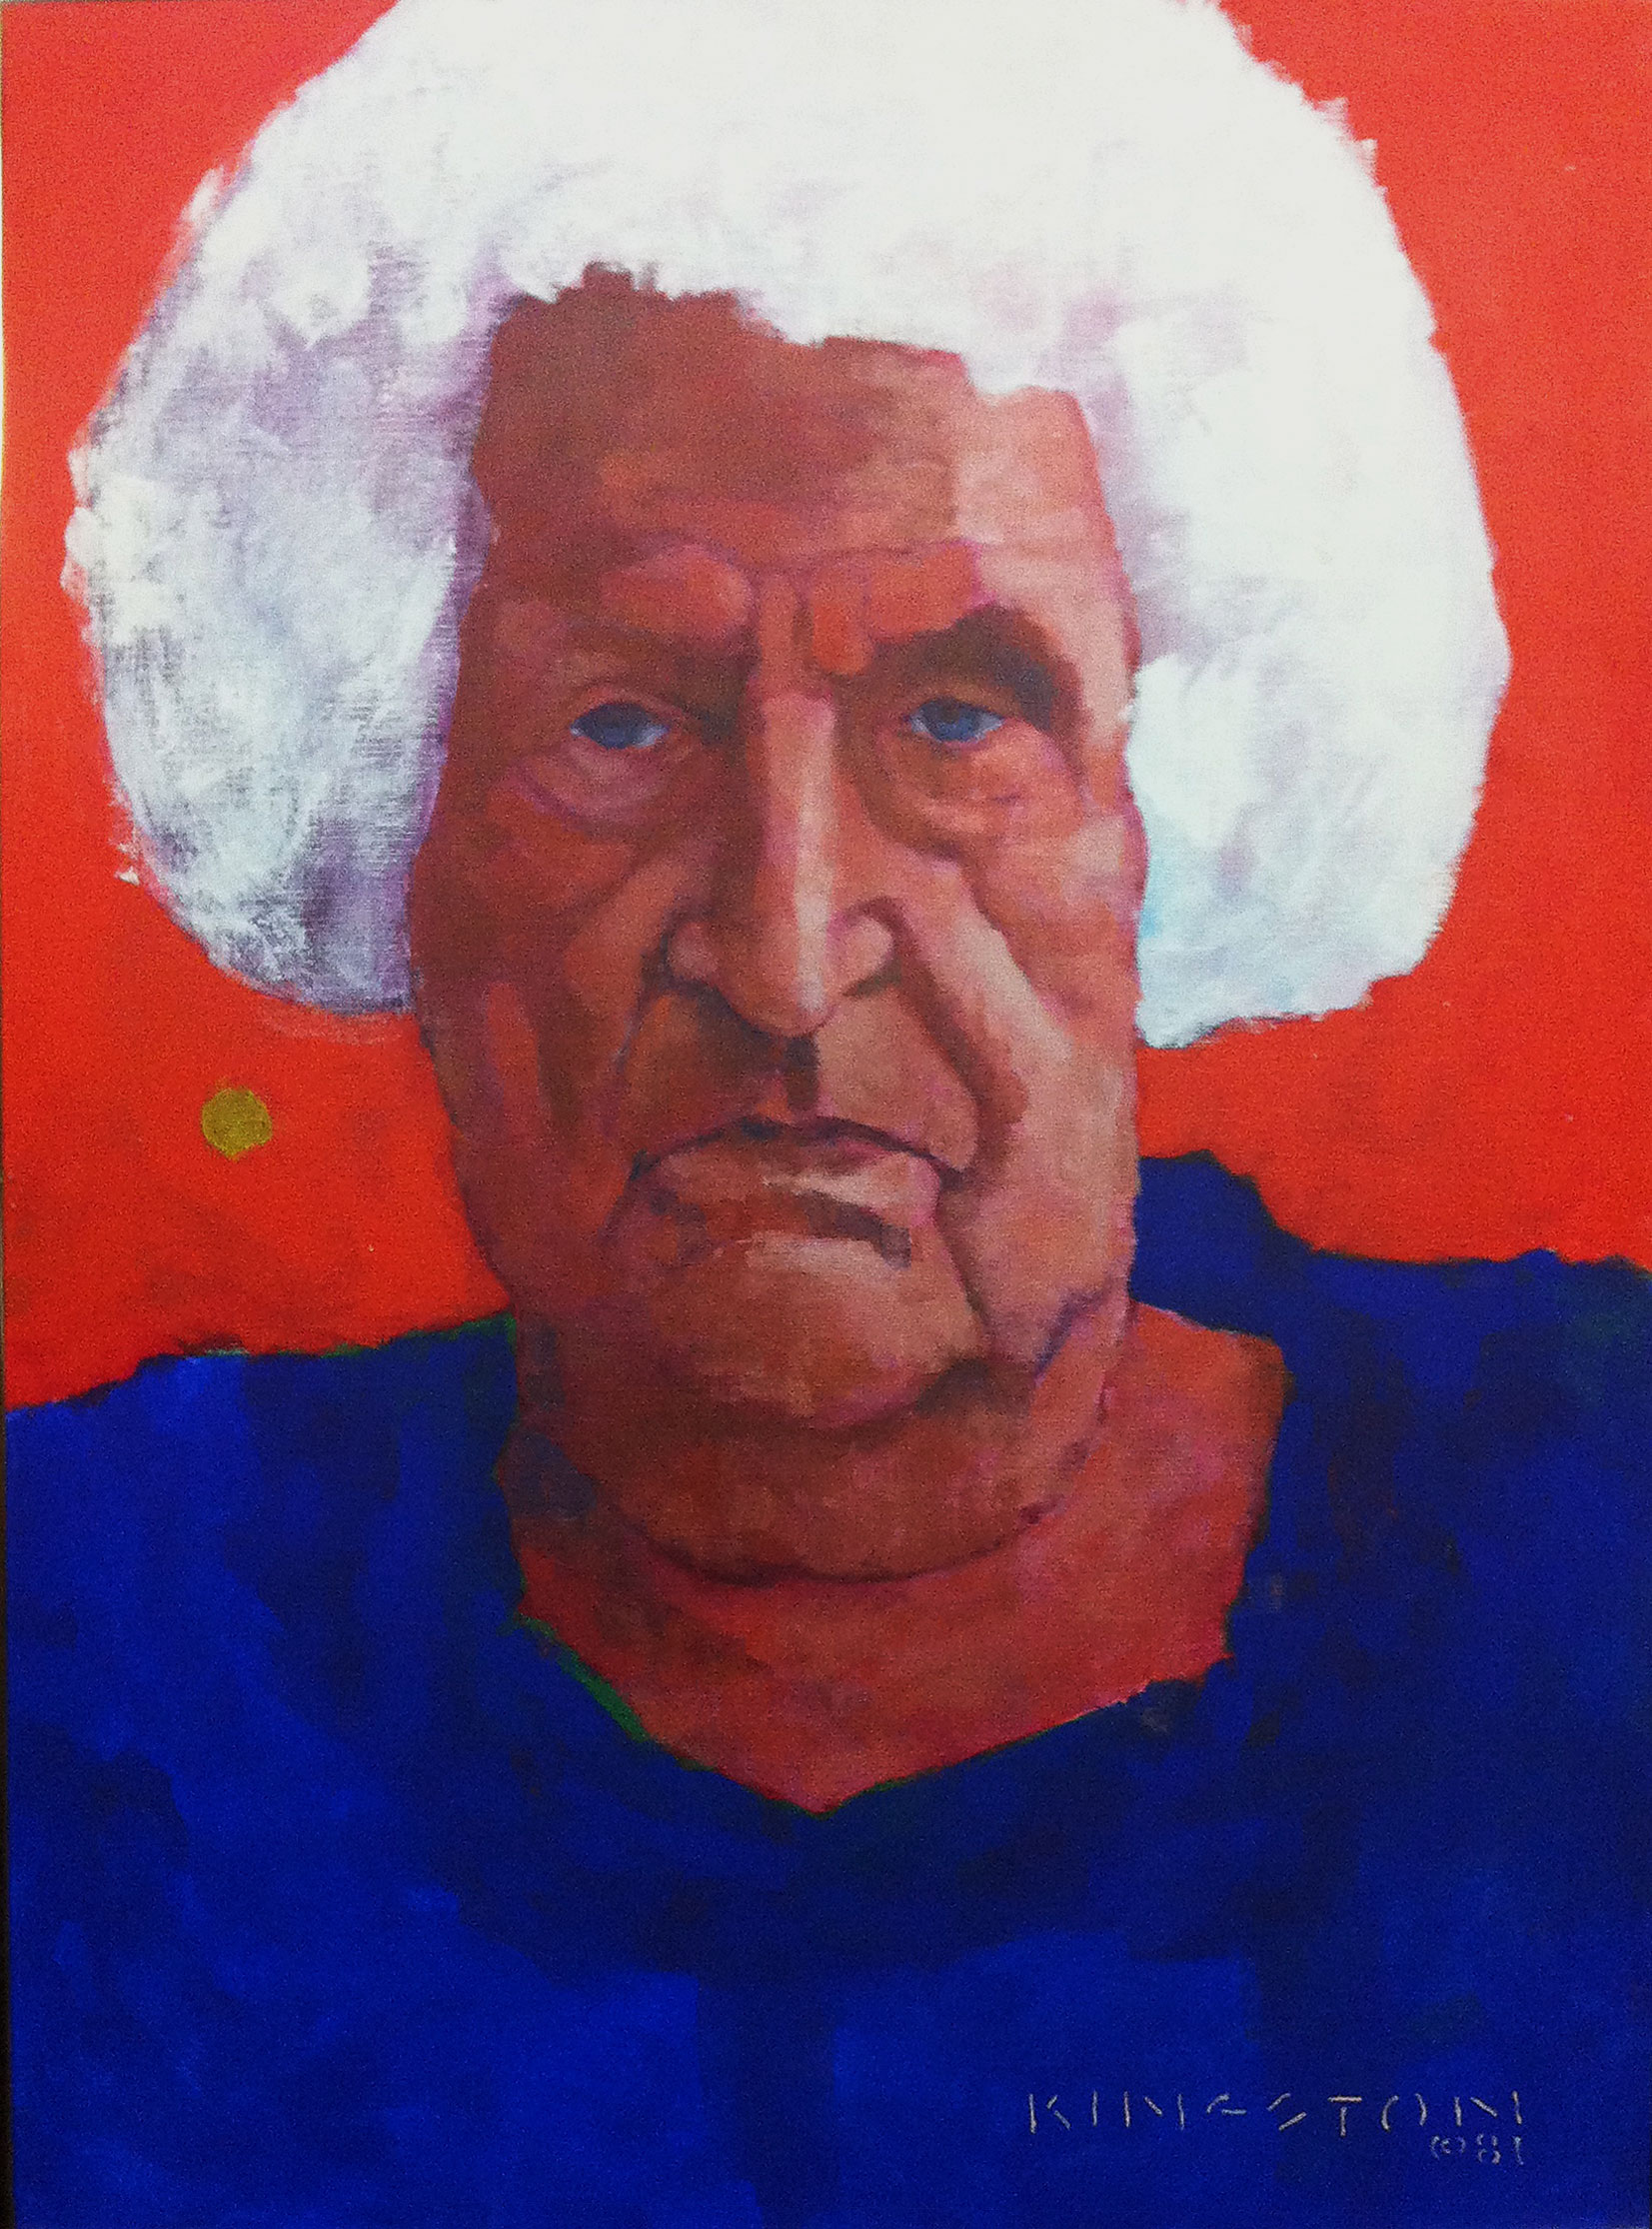 My grandmother, Beatrice Laffin, Acrylic on canvas 1981.  My wife thinks she looks to mean. I think she looks like someone who worked until she was 75 in the shoe factories. I cry when I look at this.